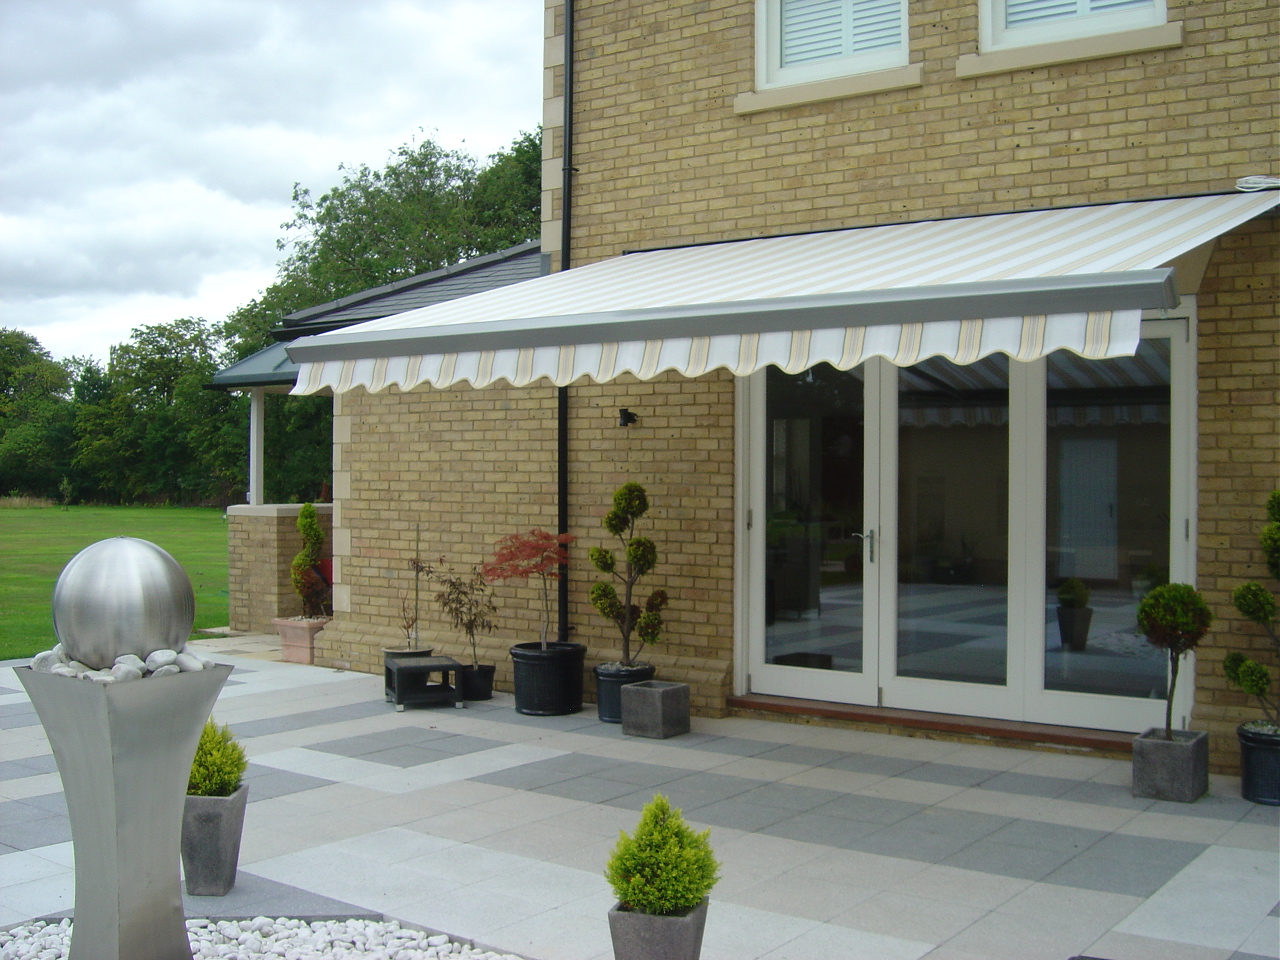 Lewens Trentino Cassette Awning